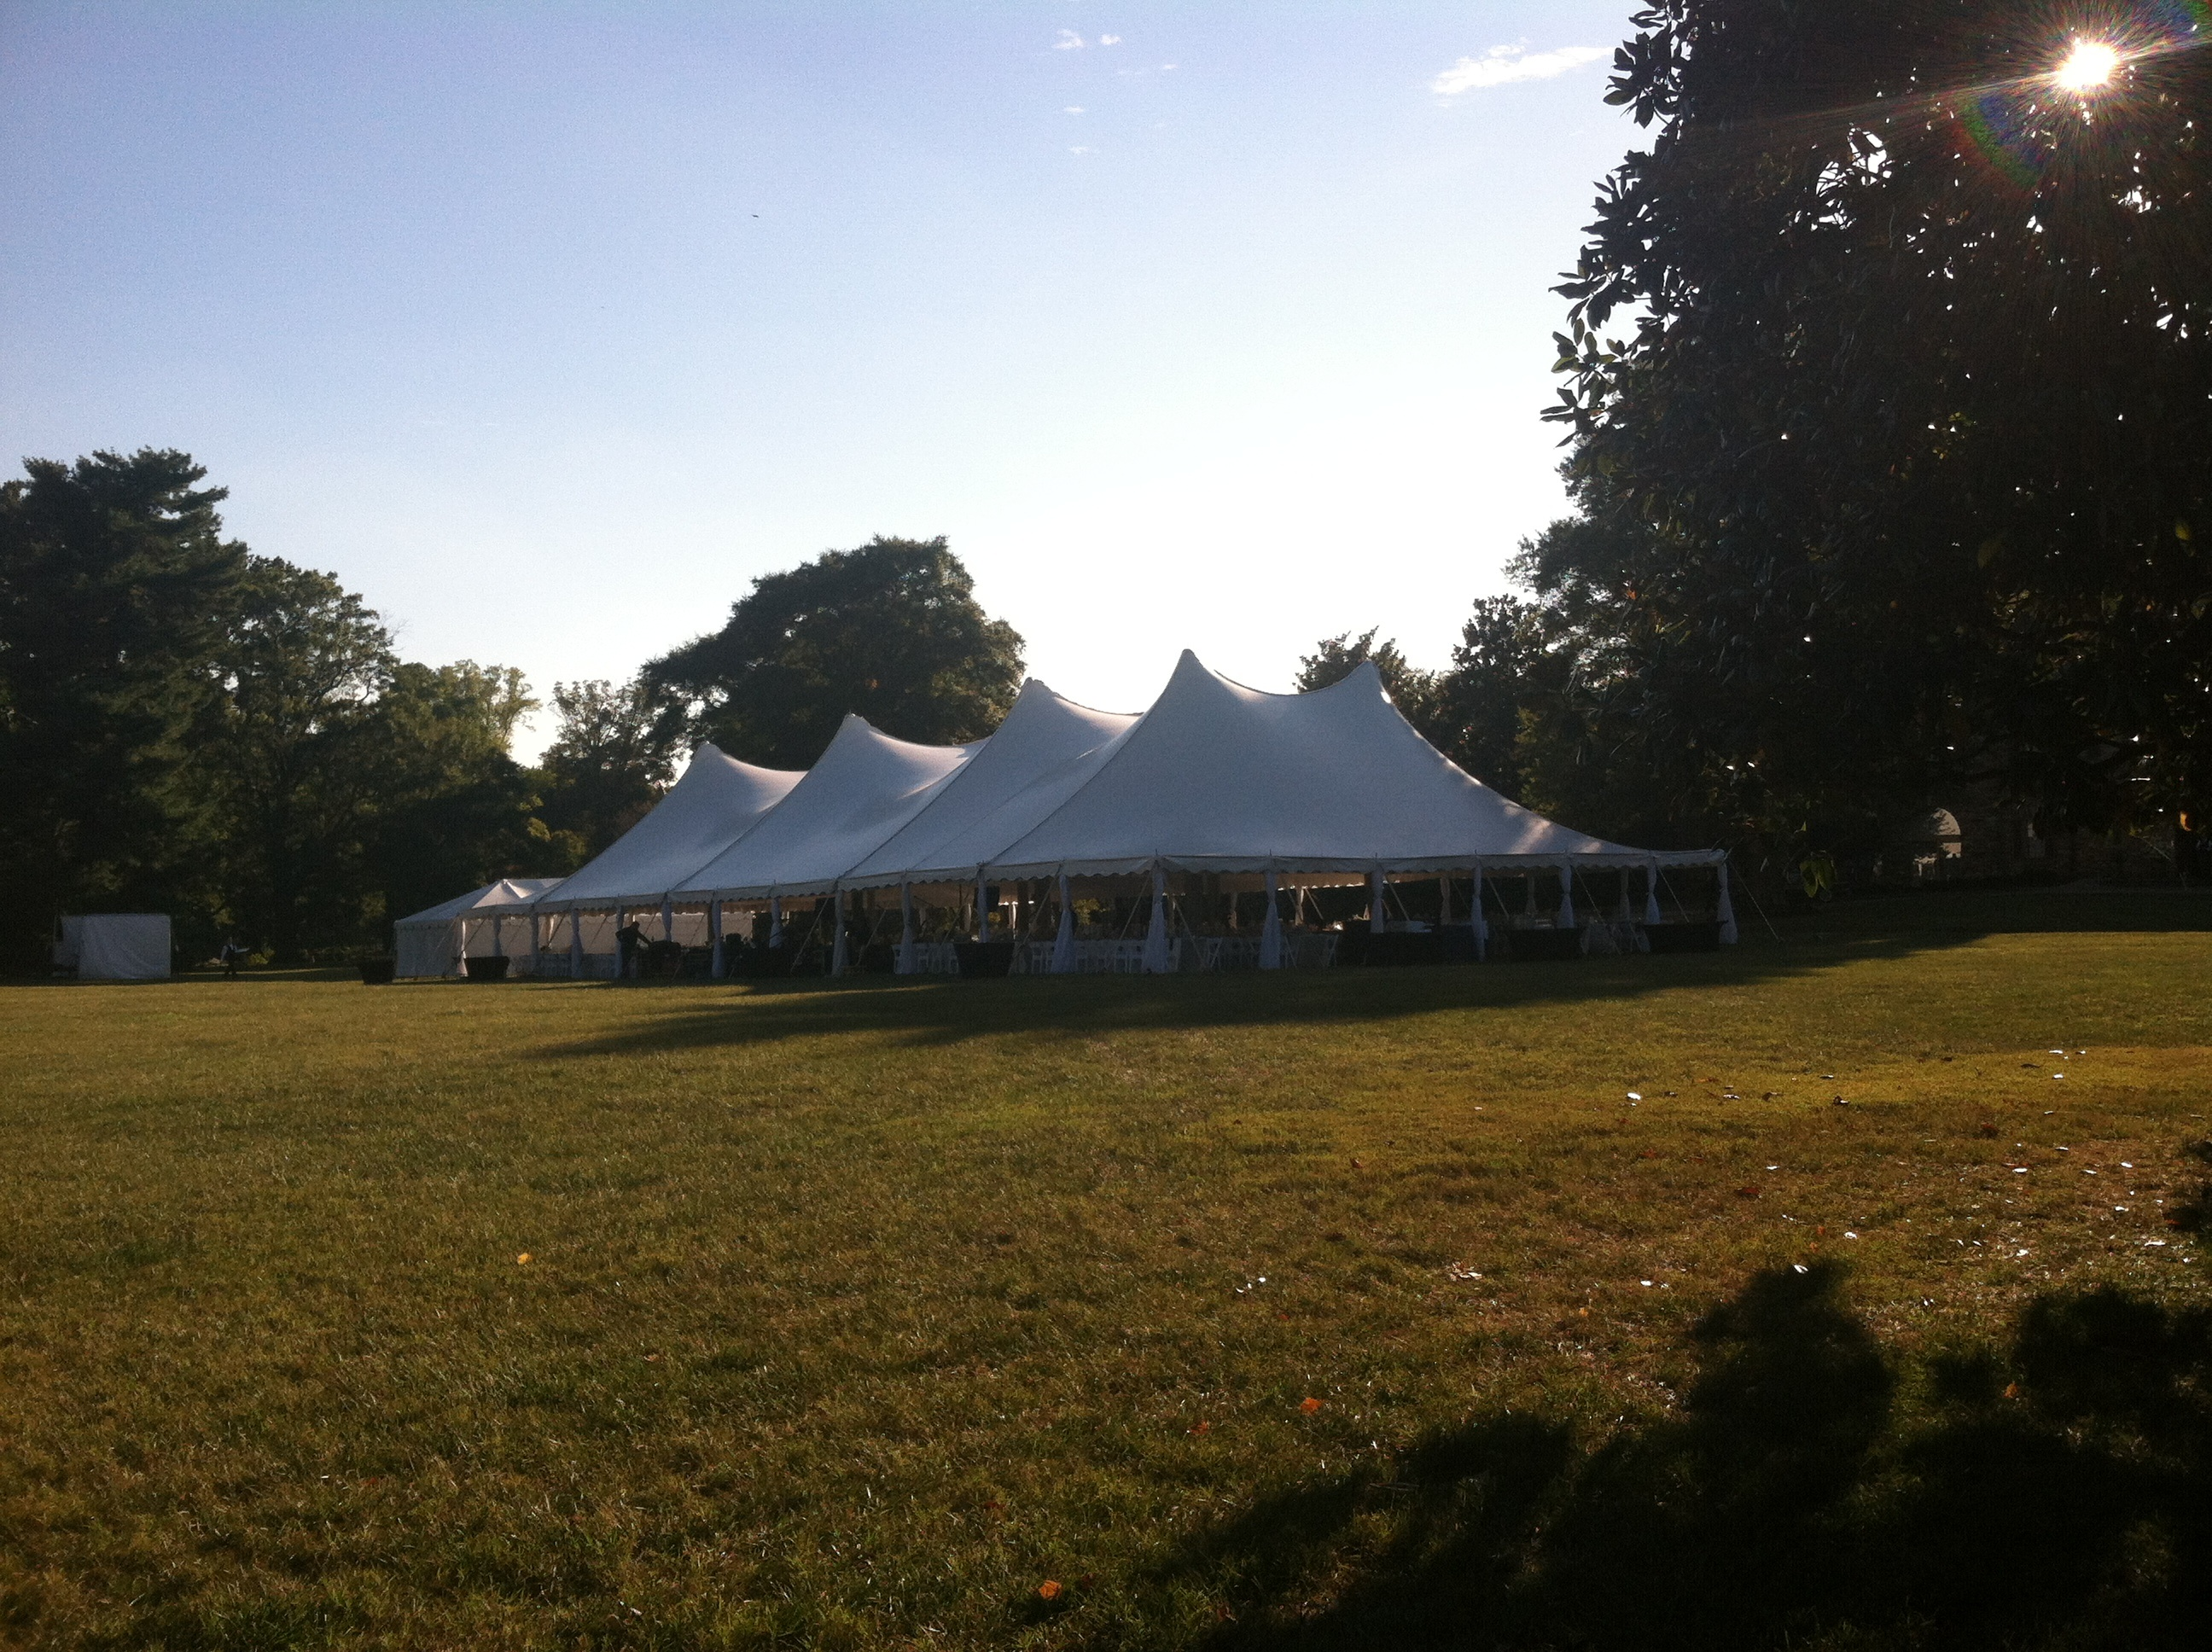 row of rental tents set up for wedding reception